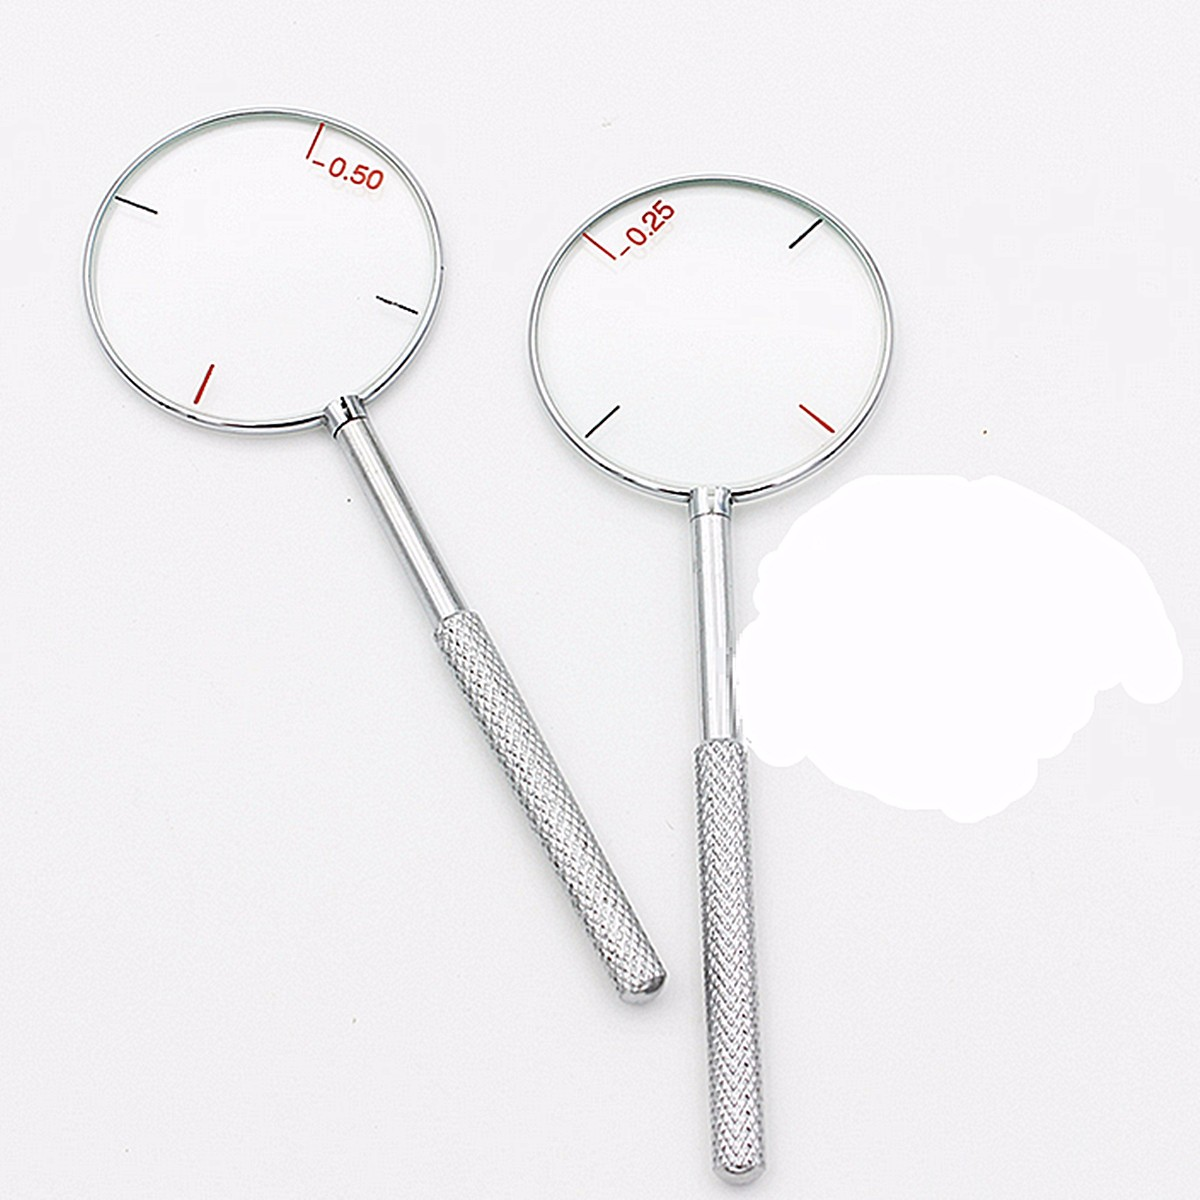 1Pcs Round Optical Cross Cylinder Lens Tool Optical Instruments Diopters 0.25 / 0.50 Free Shipping